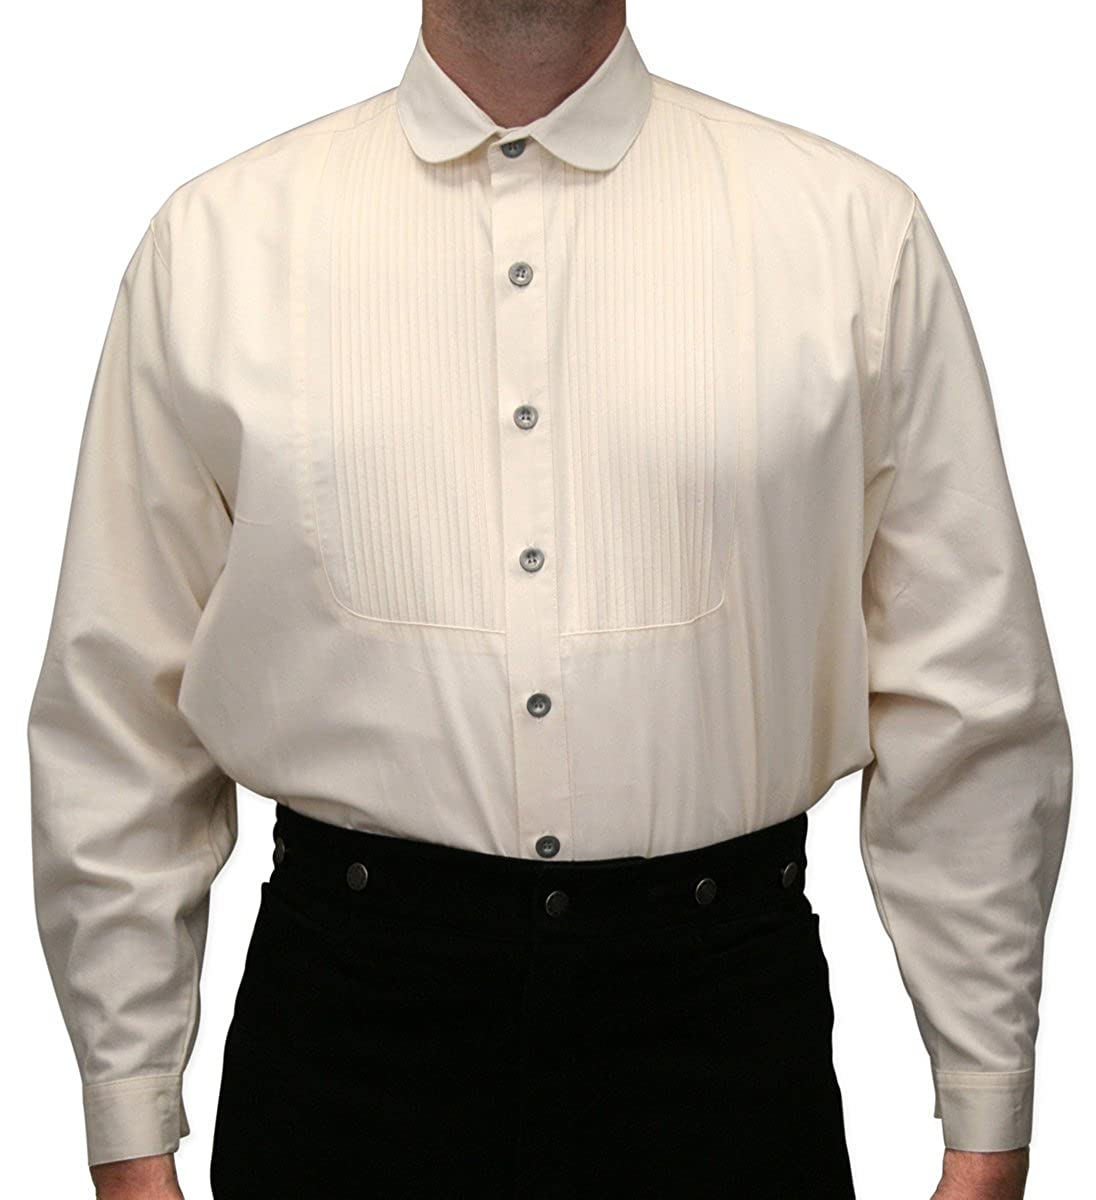 1920s Men's Dress Shirts Mens Sinclair Edwardian Club Collar Dress Shirt $59.95 AT vintagedancer.com